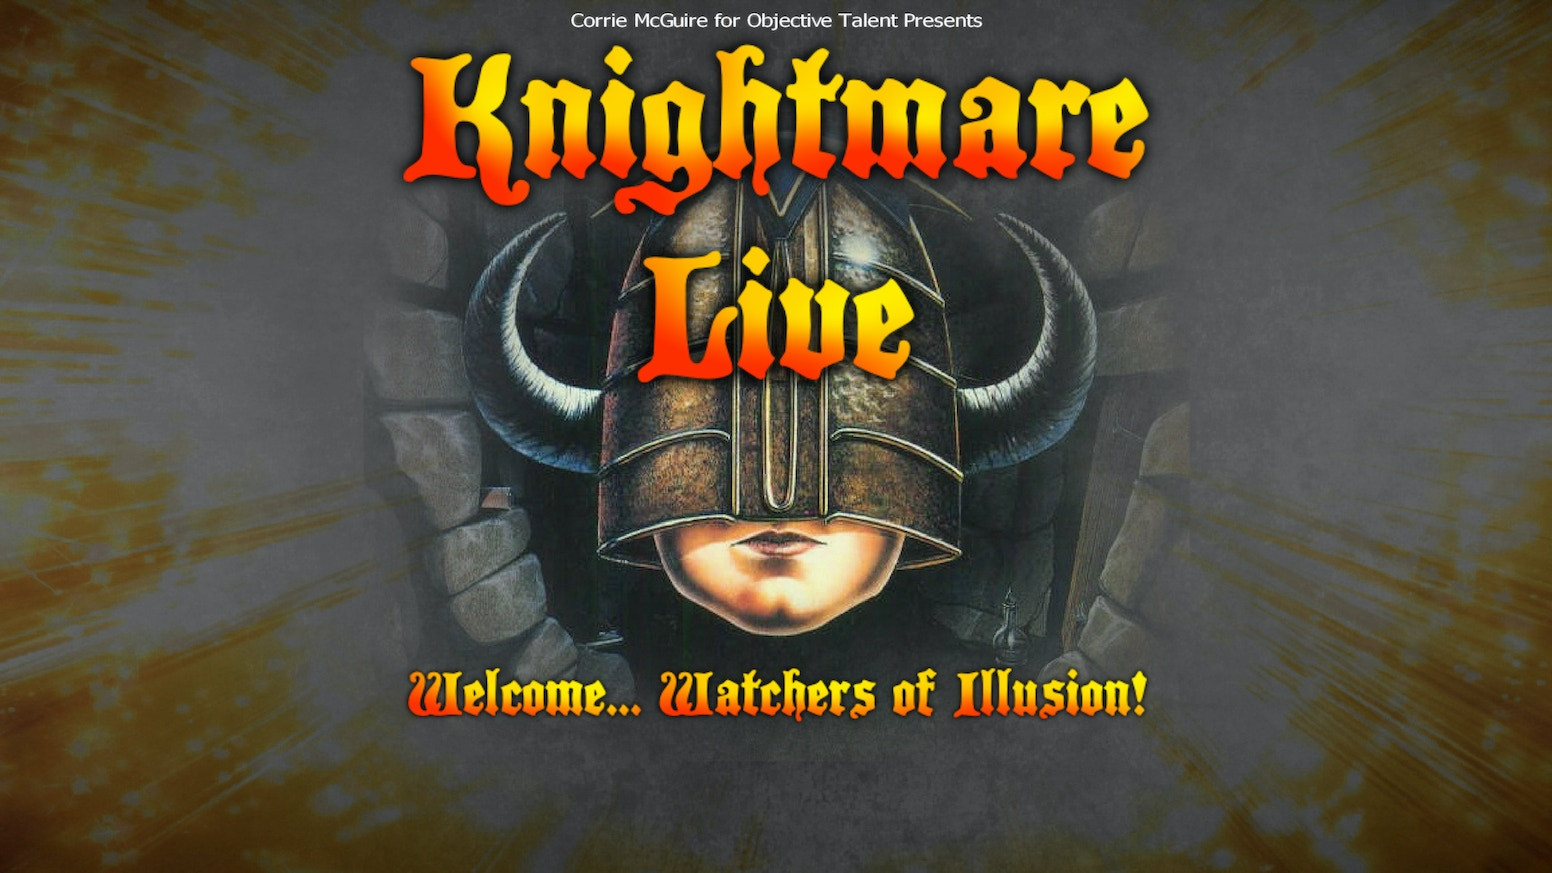 Knightmare Live; The cult TV show on stage for the 1st time by Paul ...